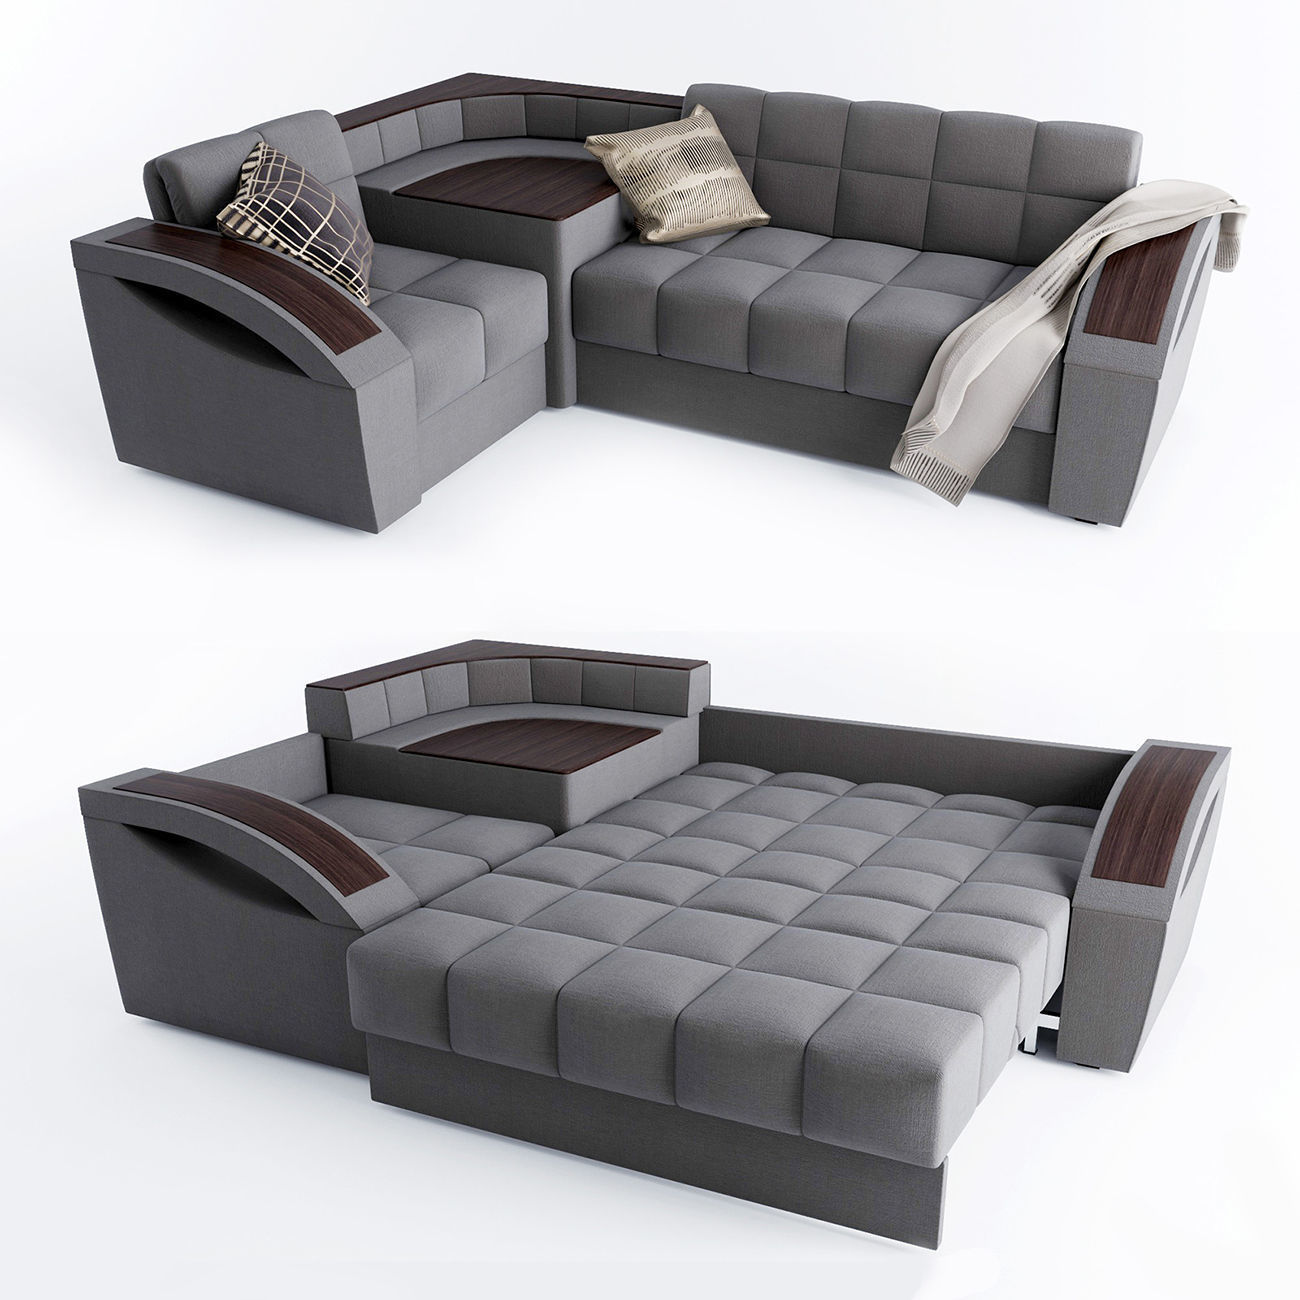 Corner sofa bed Montreal with a left angle Hoff  8D model